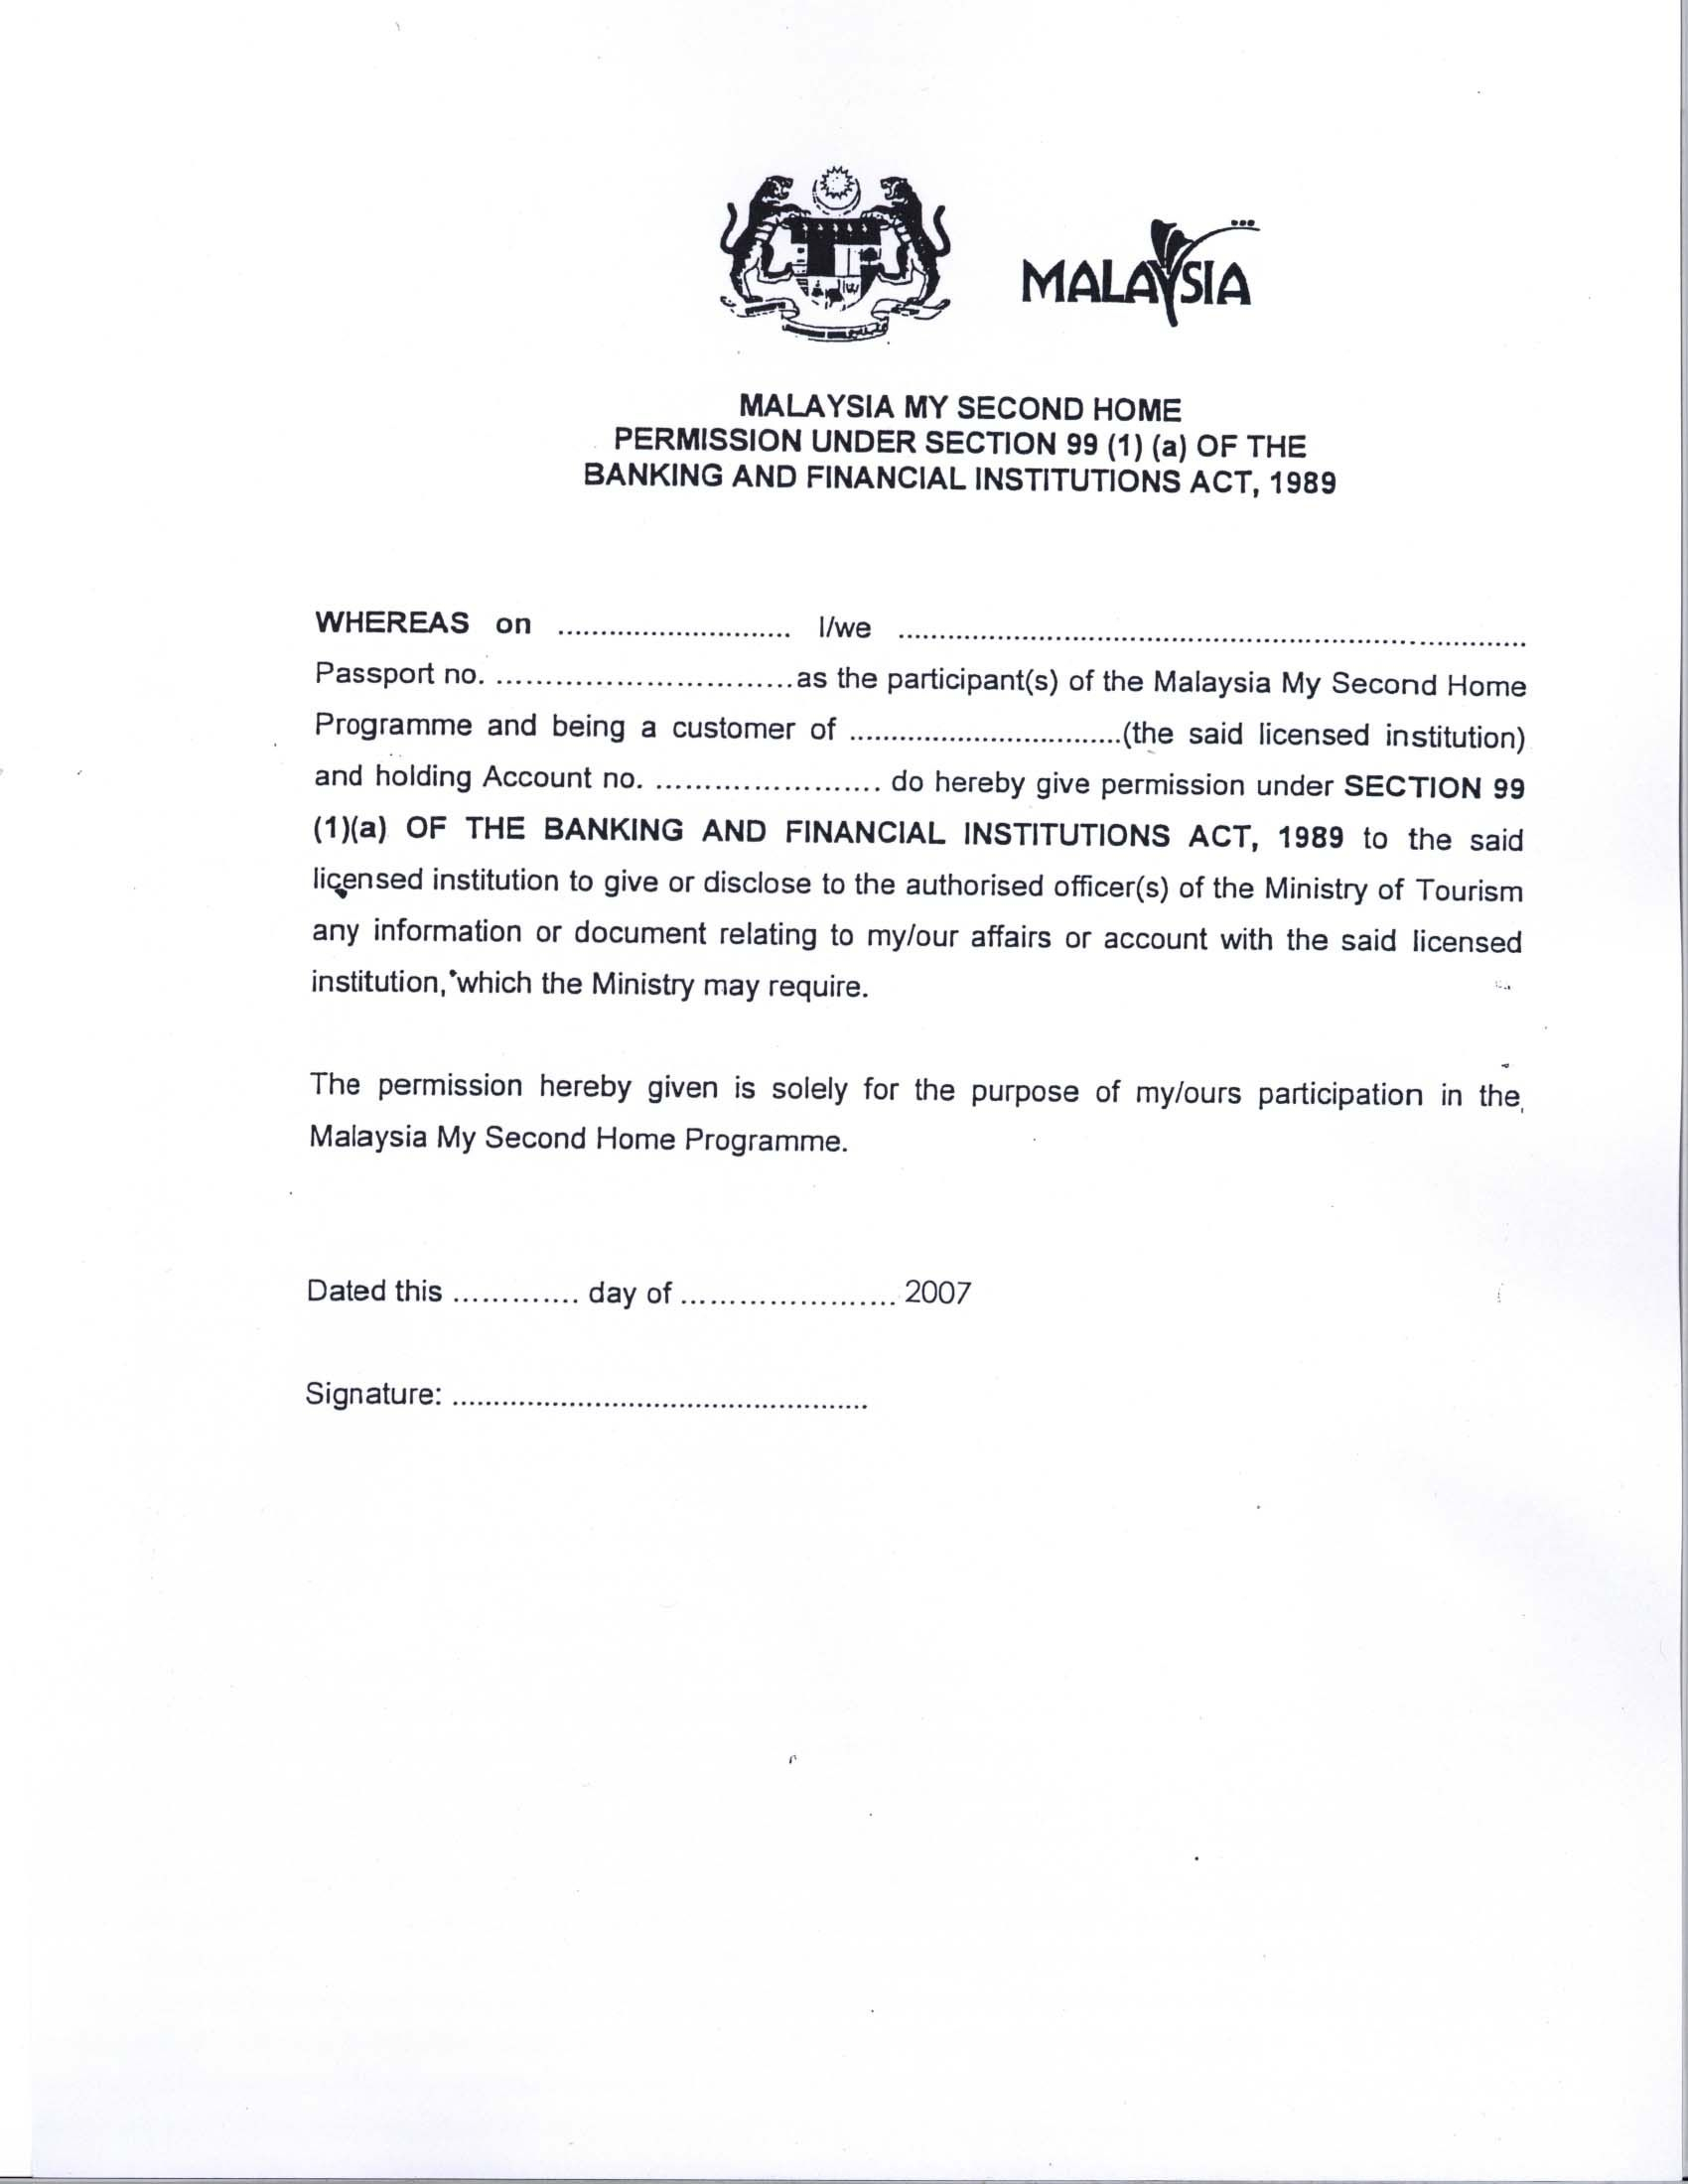 Letter Of Resignation Template Word 2007 - Malaysia Visa Application Letter Writing A Re Papervisa Request